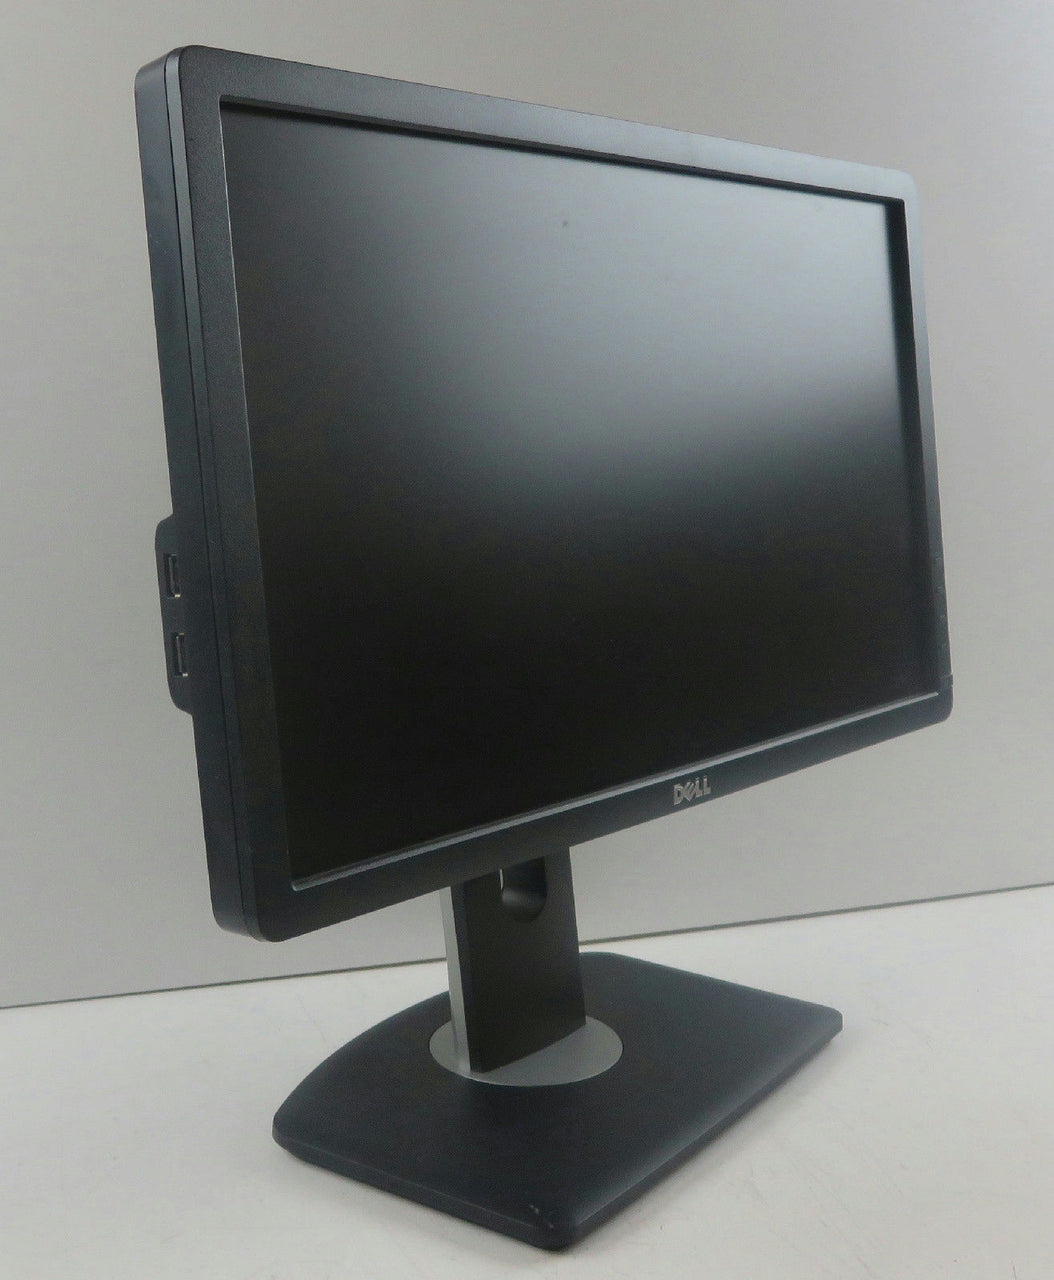 "Dell P2012HT 20"" Widescreen LCD LED Backlit Monitor - Black"